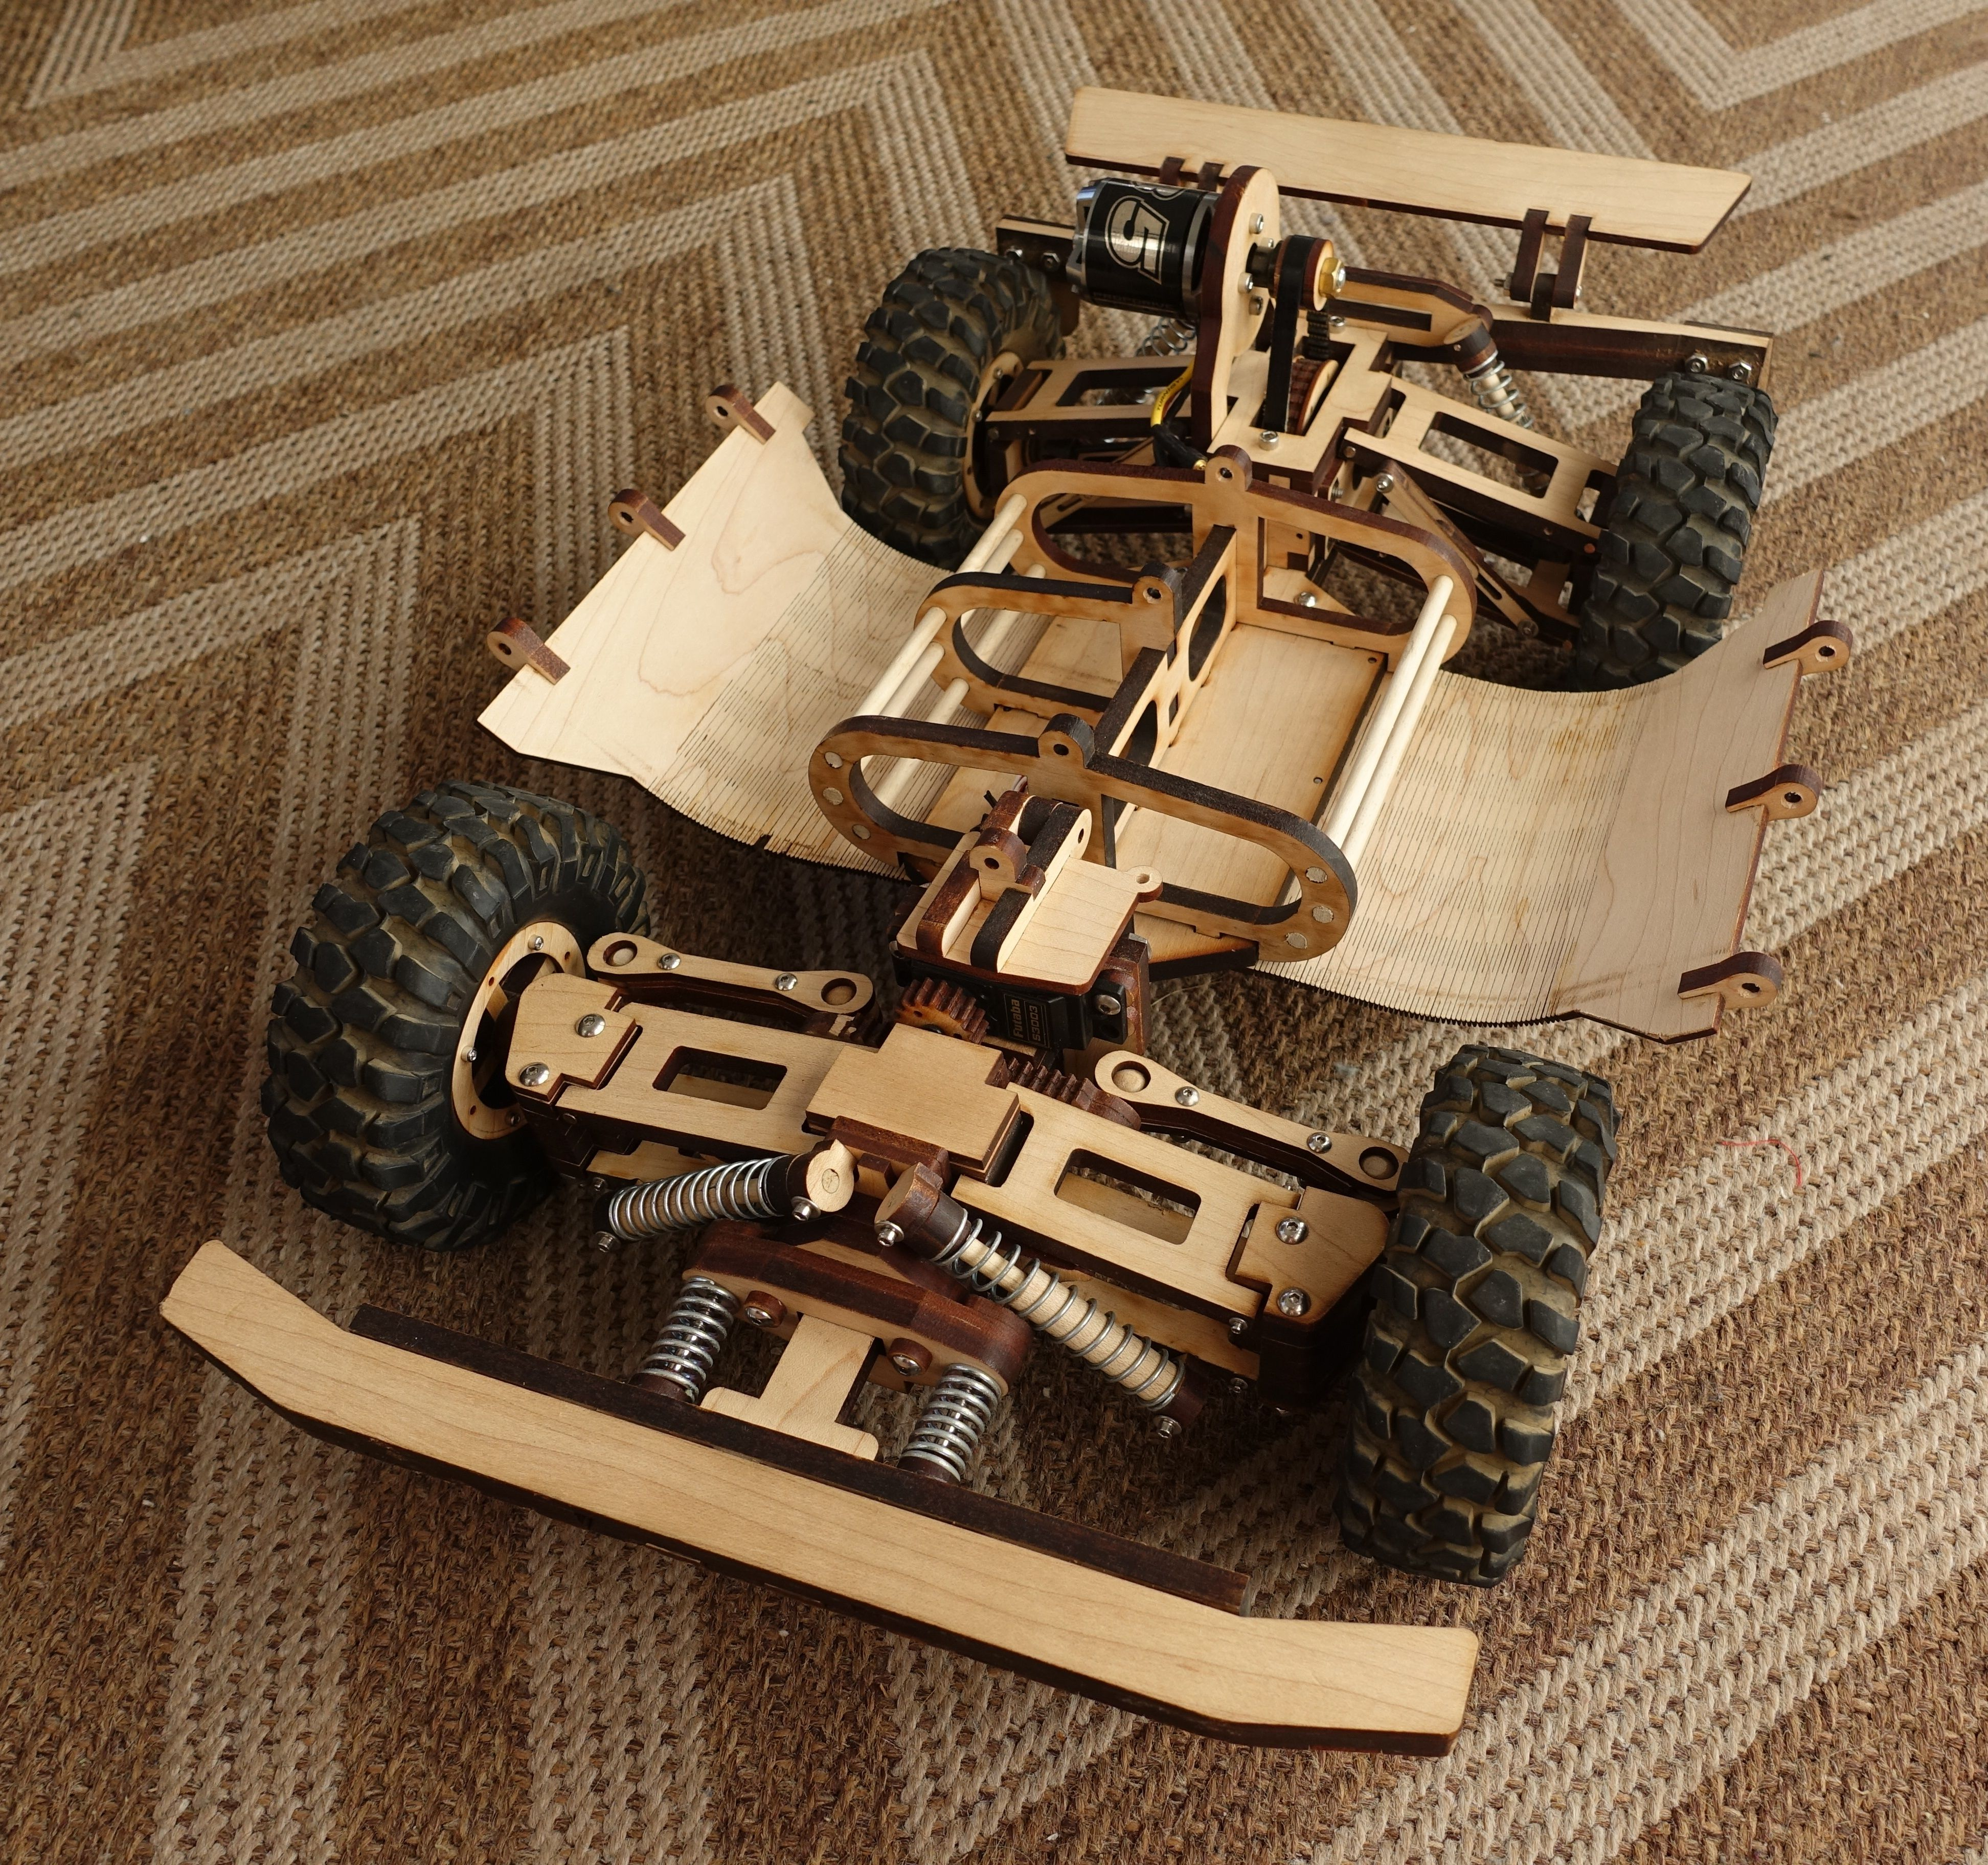 Undefined Laser Cutting Projects To Try Pinterest